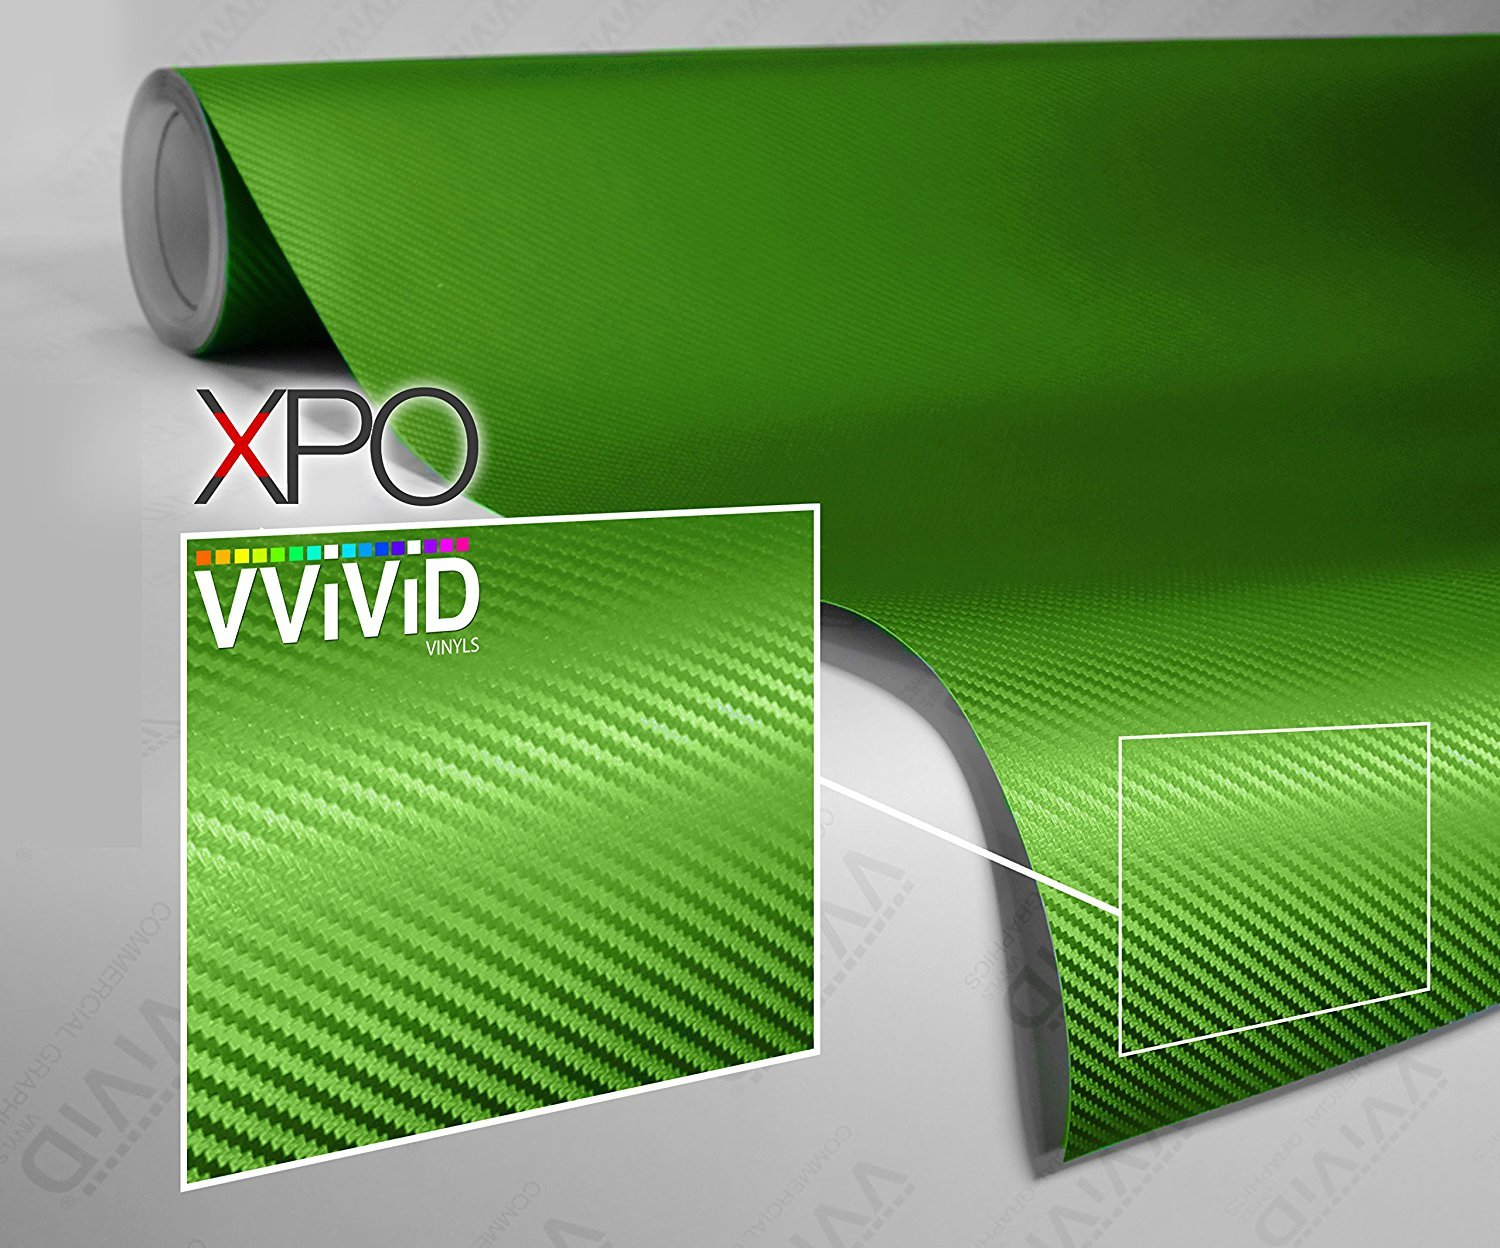 3ft x 5ft VViViD XPO Lime Green Dry Carbon Fiber Vinyl Wrap Roll with Air Release Technology